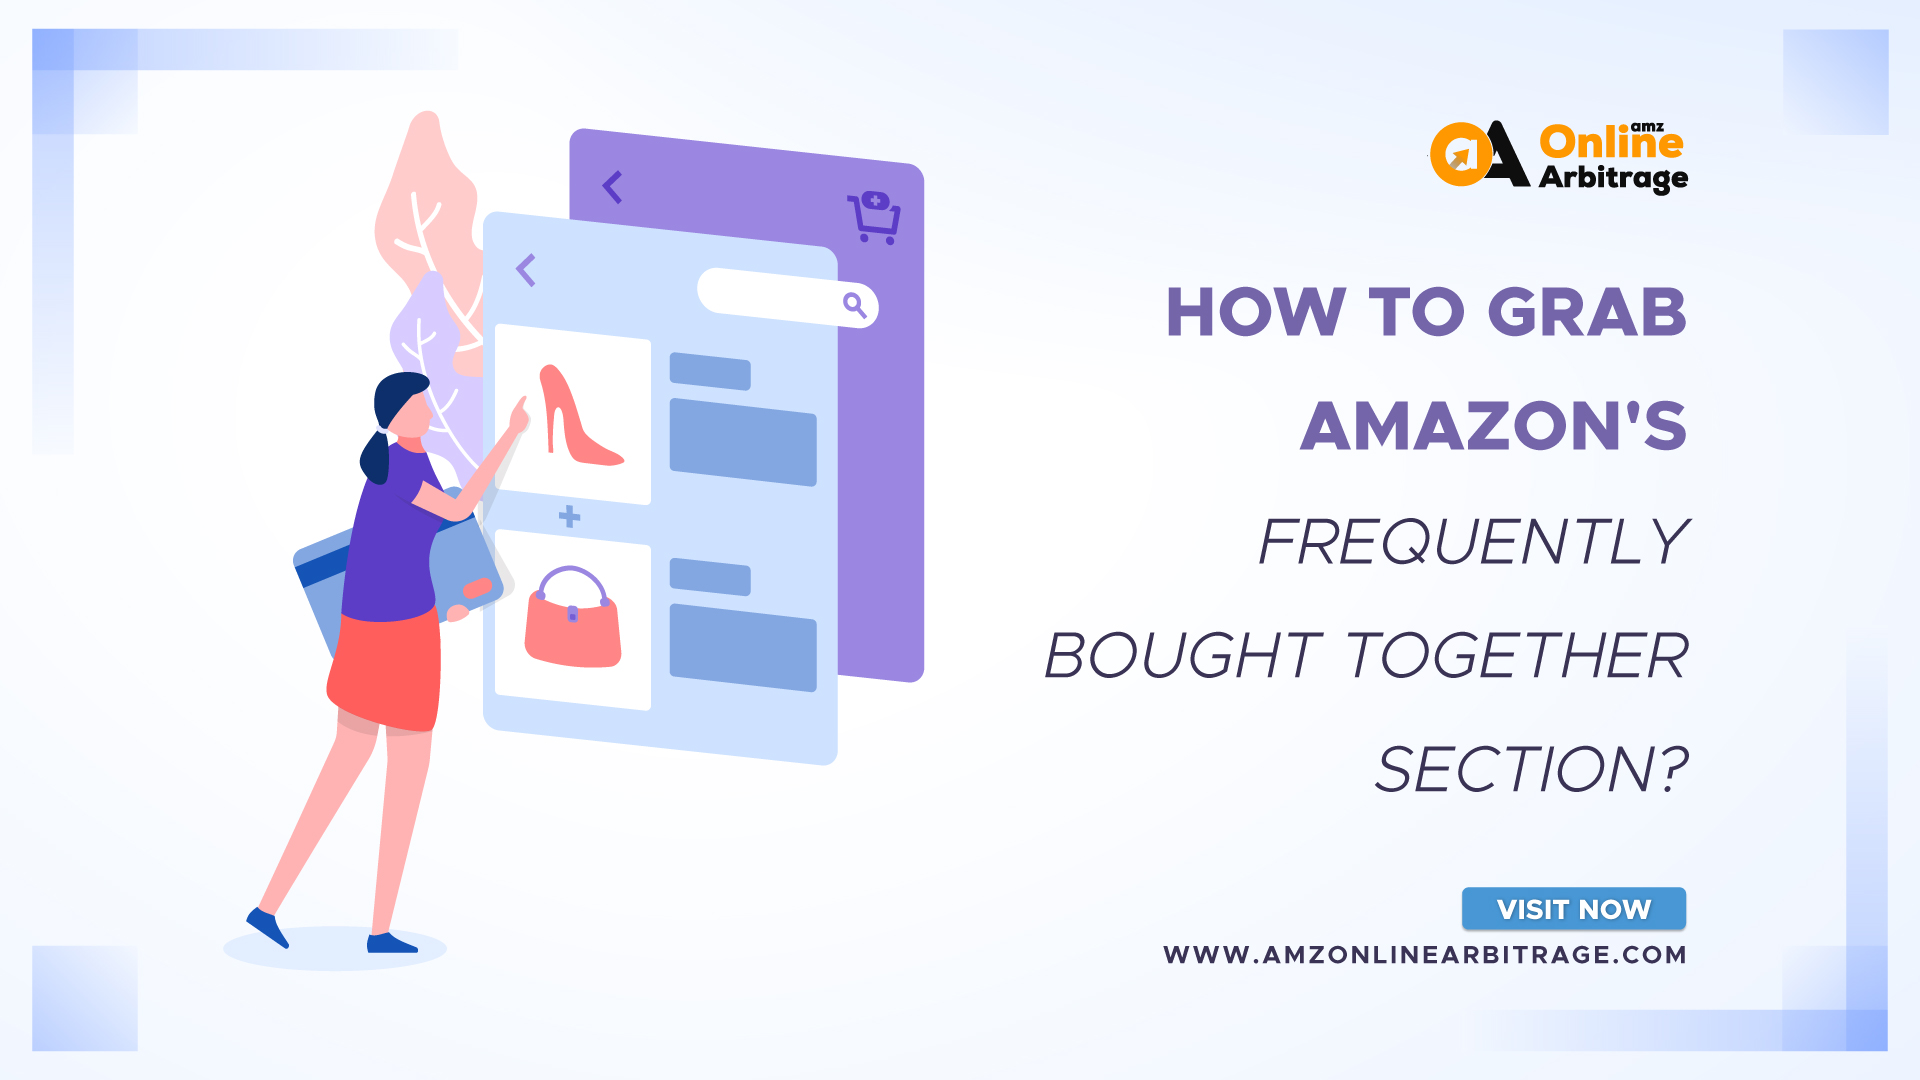 HOW TO GRAB AMAZON'S FREQUENTLY BOUGHT TOGETHER SECTION?